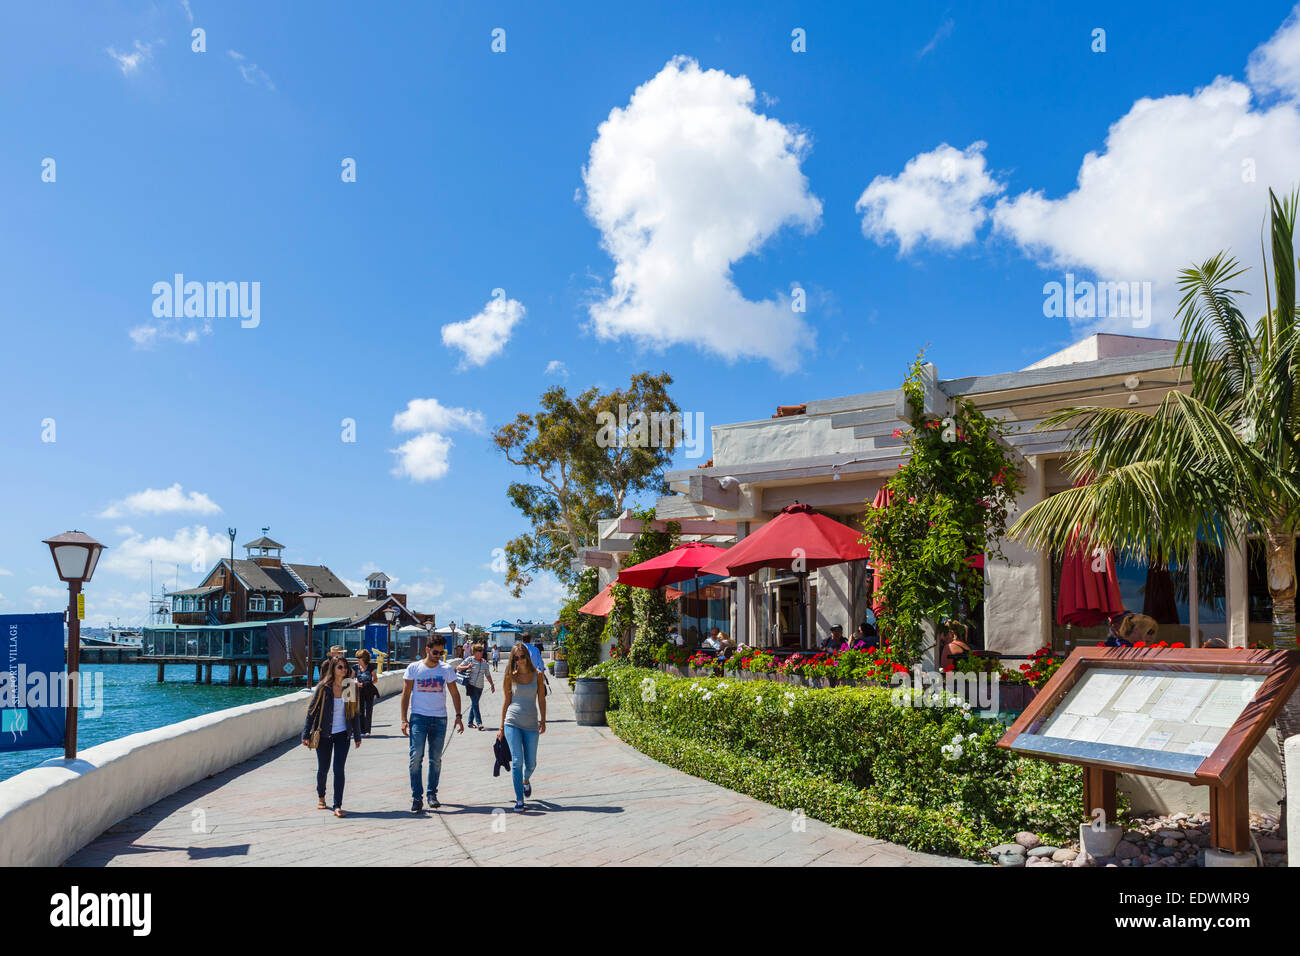 Waterfront Restaurants On The Embarcadero At Seaport Village